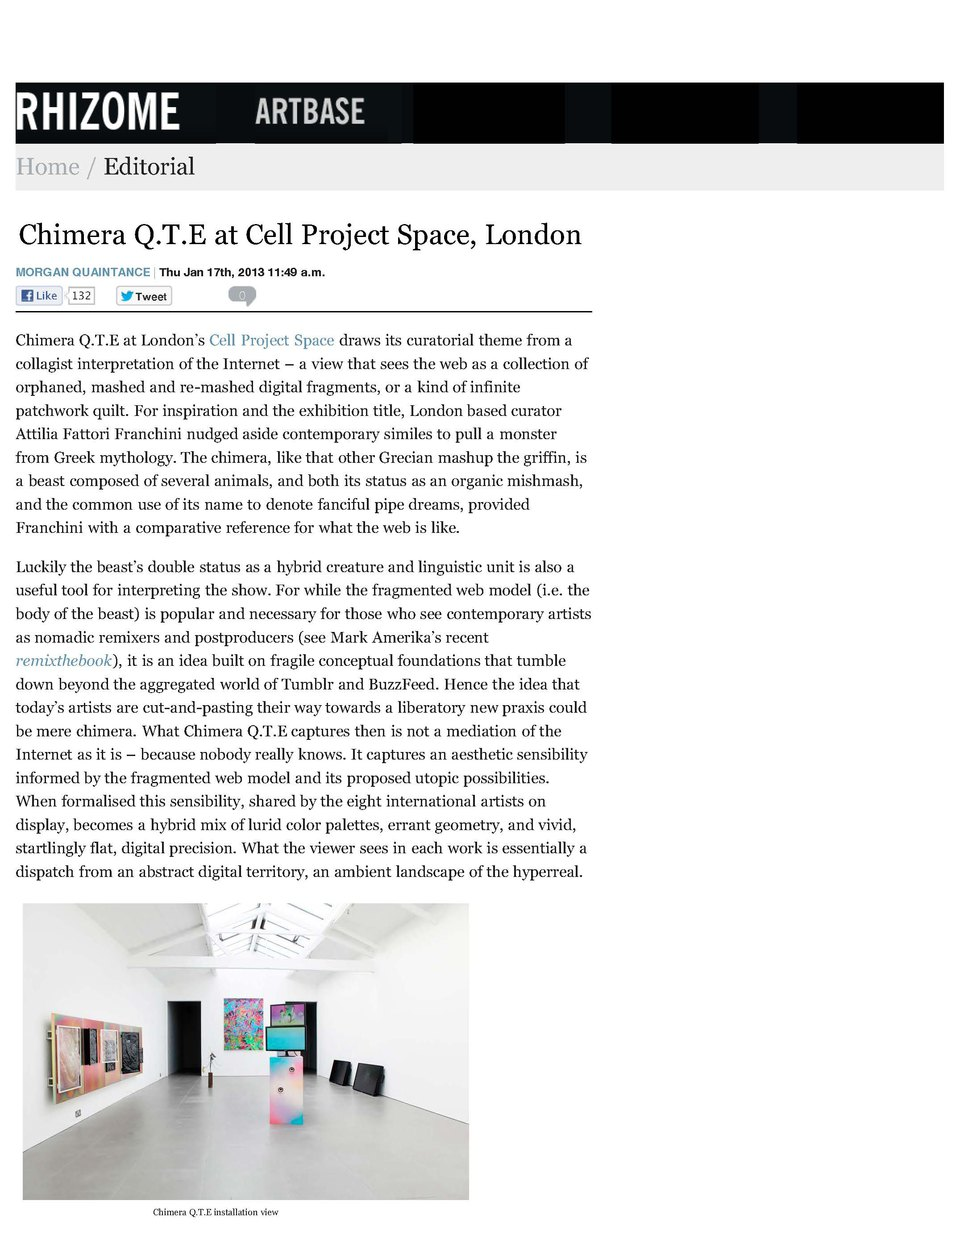 Rhizome | Chimera Q.T.E at Cell Project Space, London_Page_1.jpg